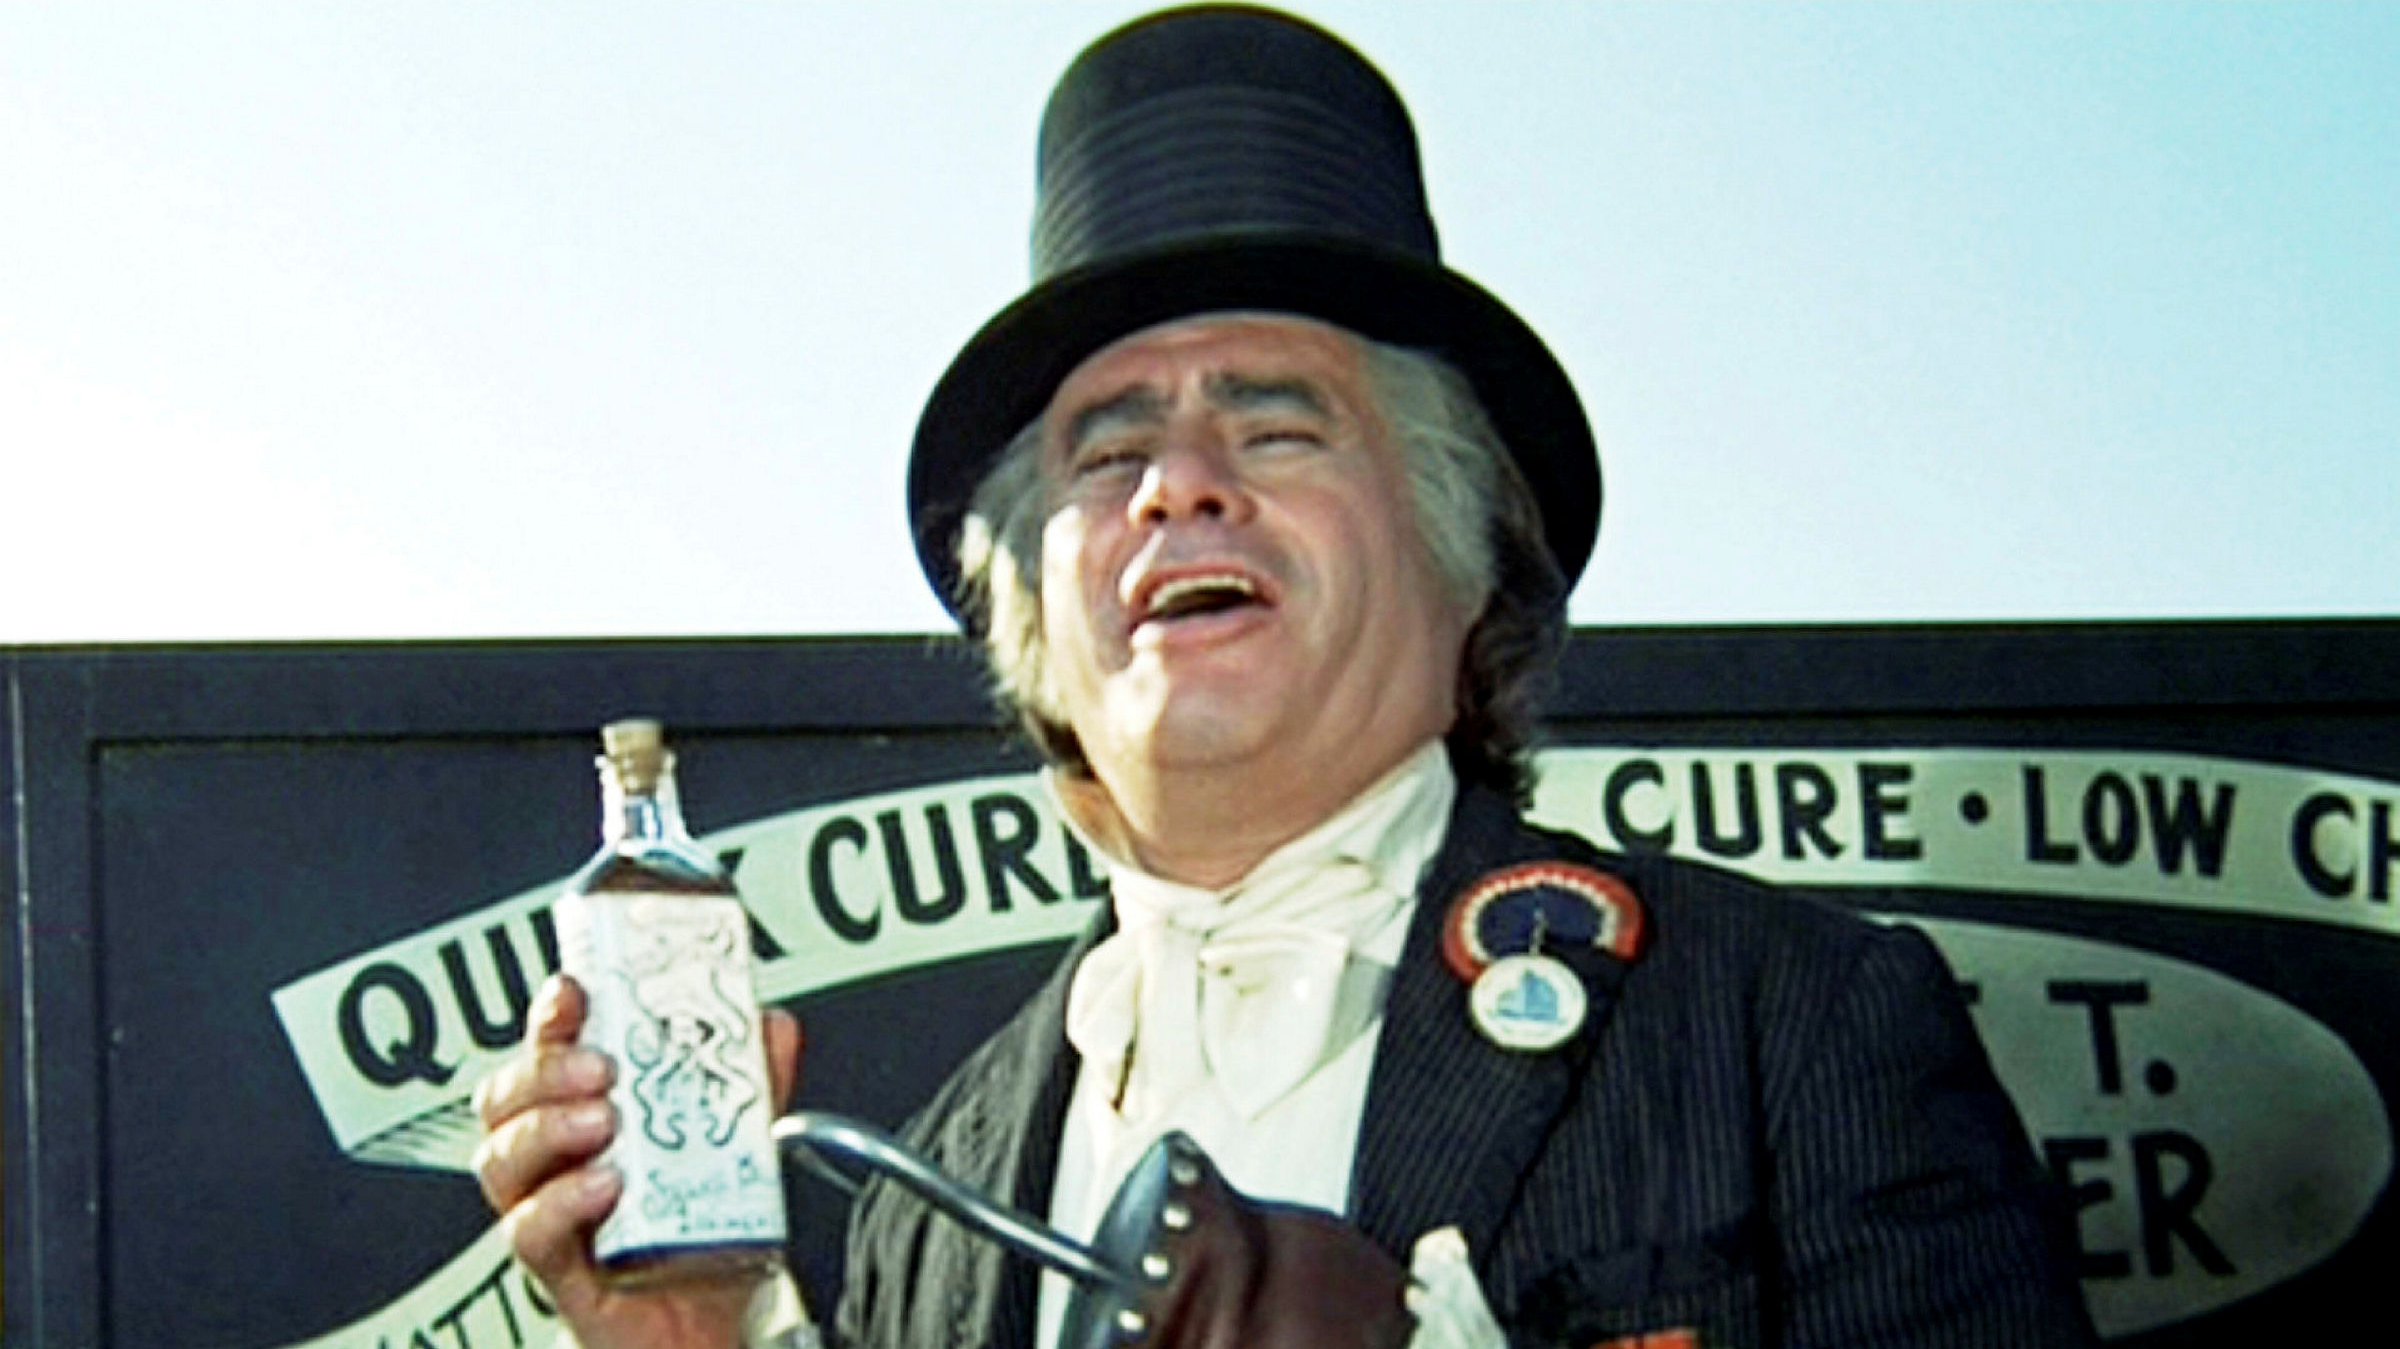 Asset allocation specialists are the new snake oil salesmen | Financial  Times